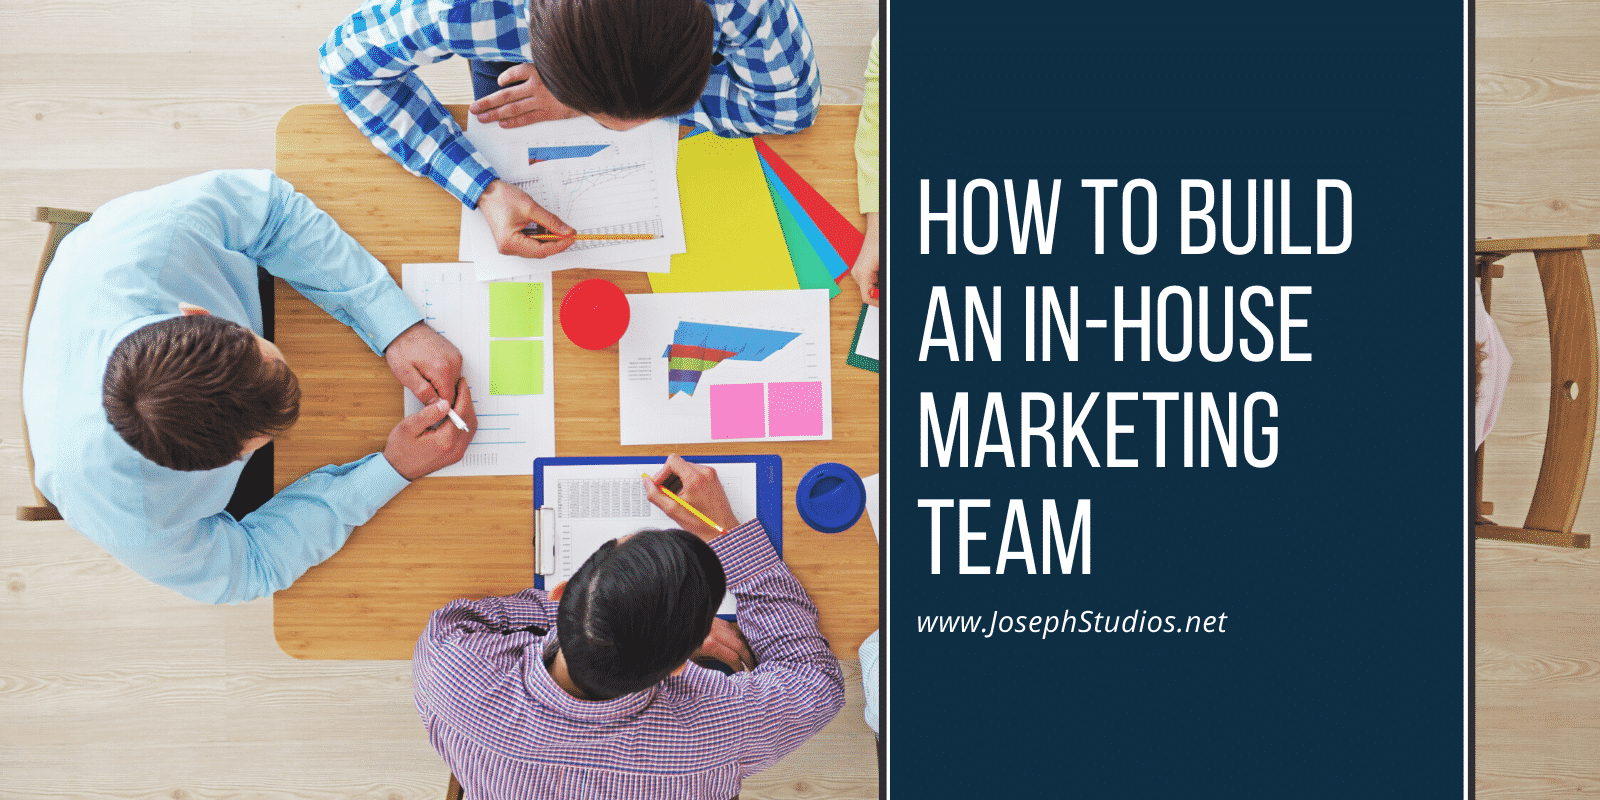 How to Build An In-House Marketing Team